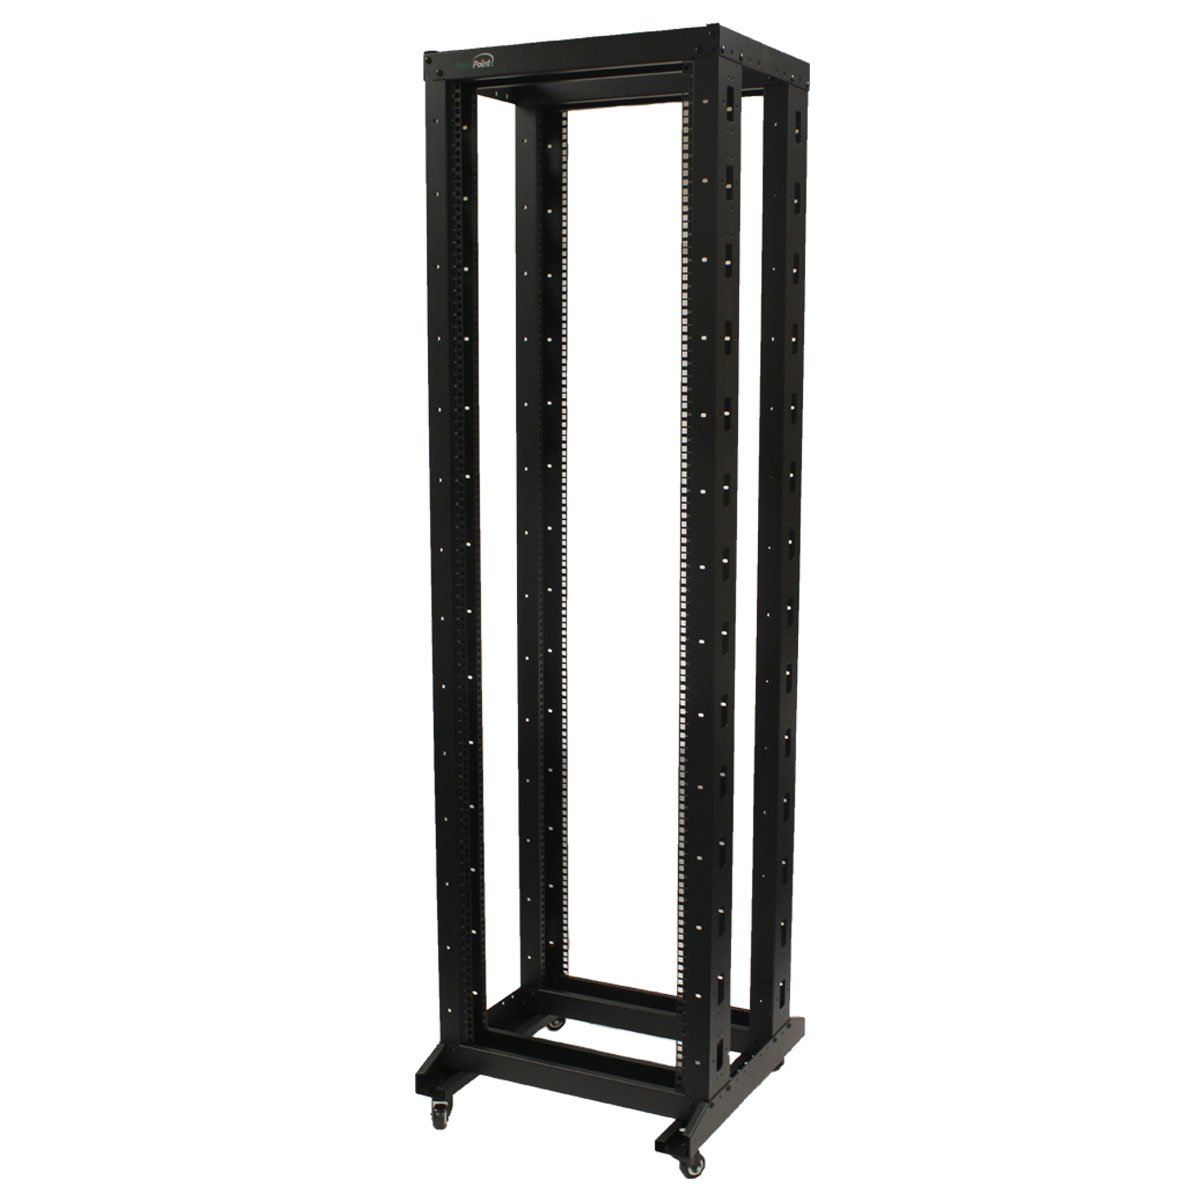 NavePoint 7ft Open Frame 19 Inch 42U 4-Post Network Server Relay Rack Rolling with Casters